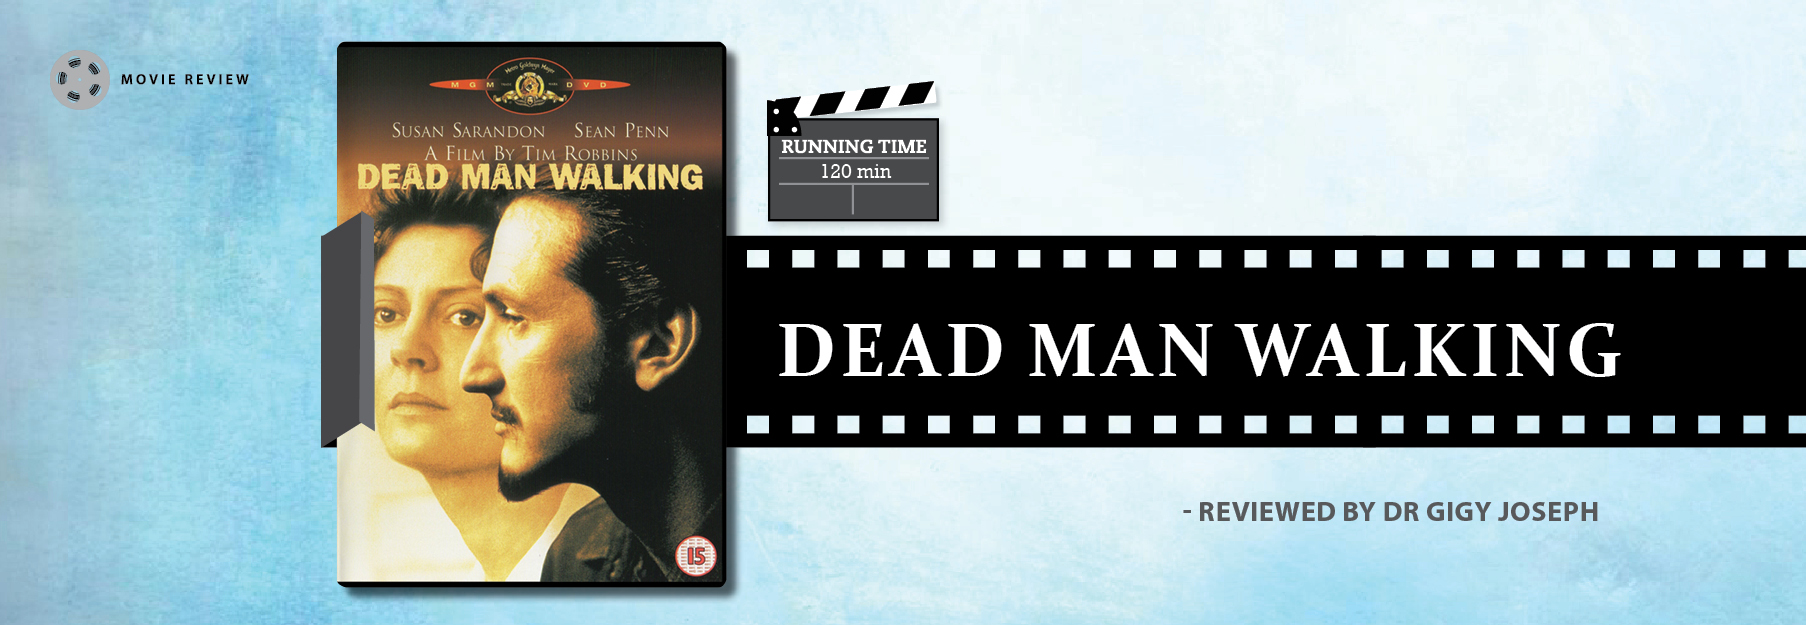 a description of the film dead man walking directed by tim robbins Imdbcom view imdb information about film: dead man walking  rudd simmons  written and directed by tim robbins  schema:description  tells the story of.